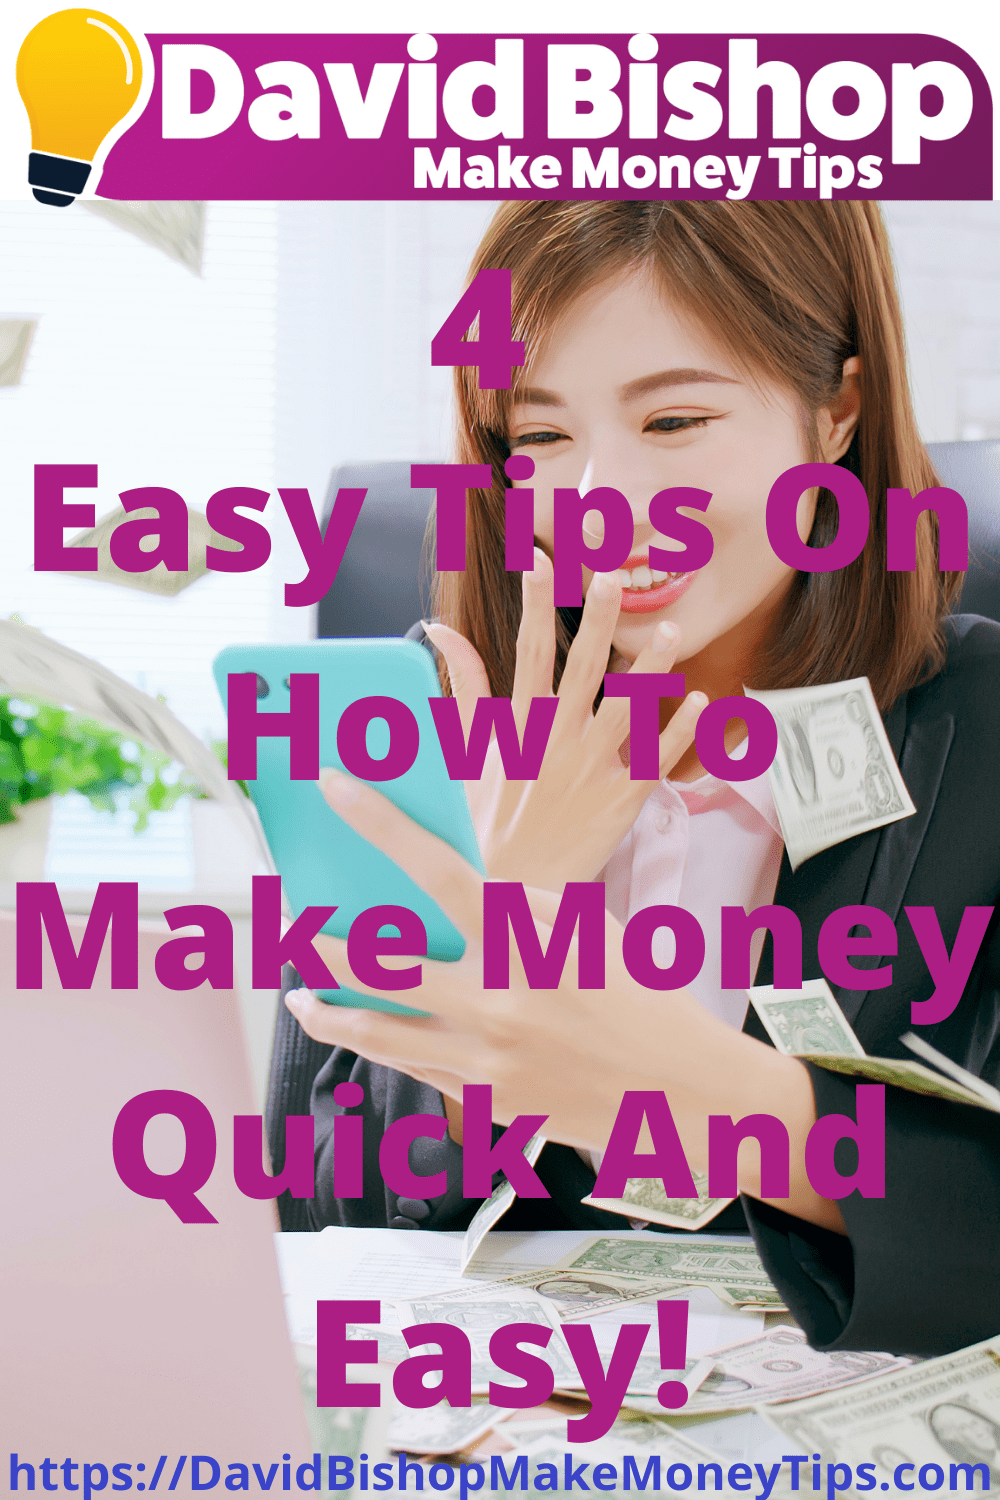 4 Easy Tips On How To Make Money Quick And Easy!